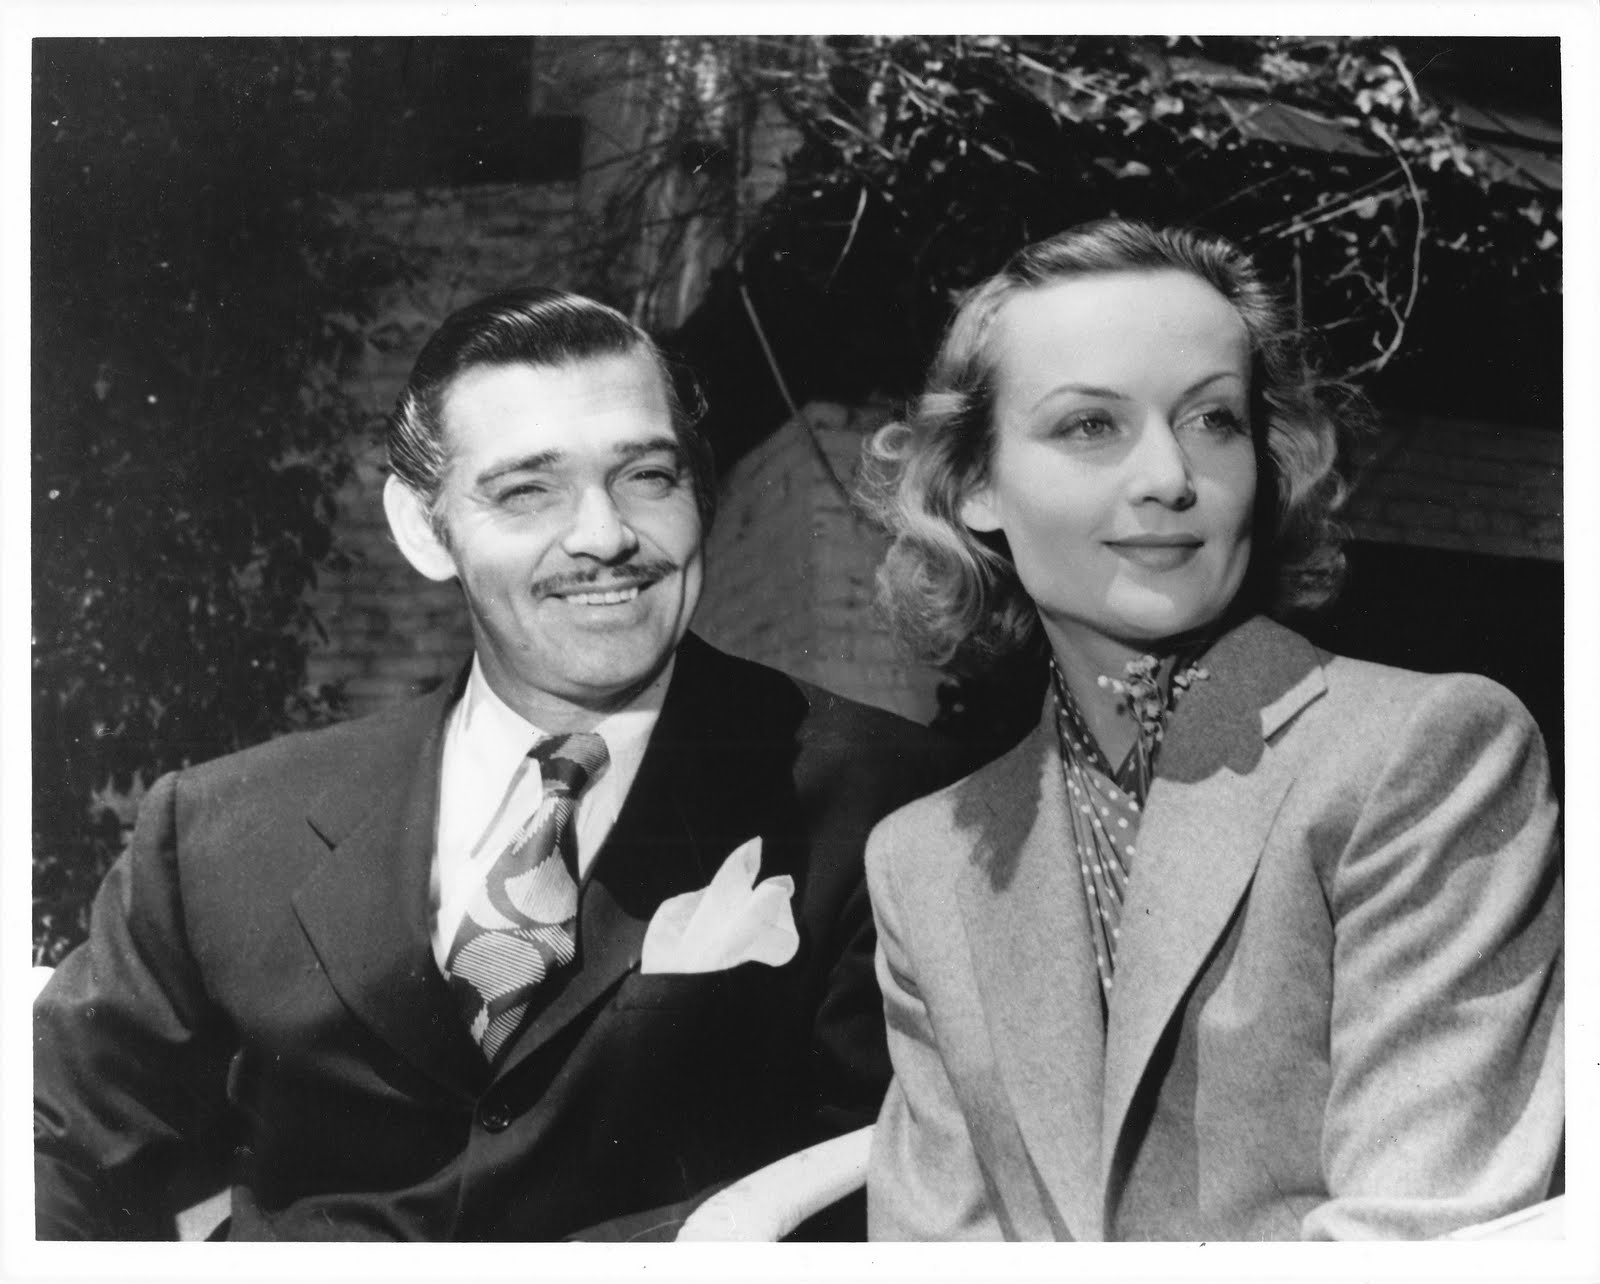 How Many Times Was Clark Gable Married